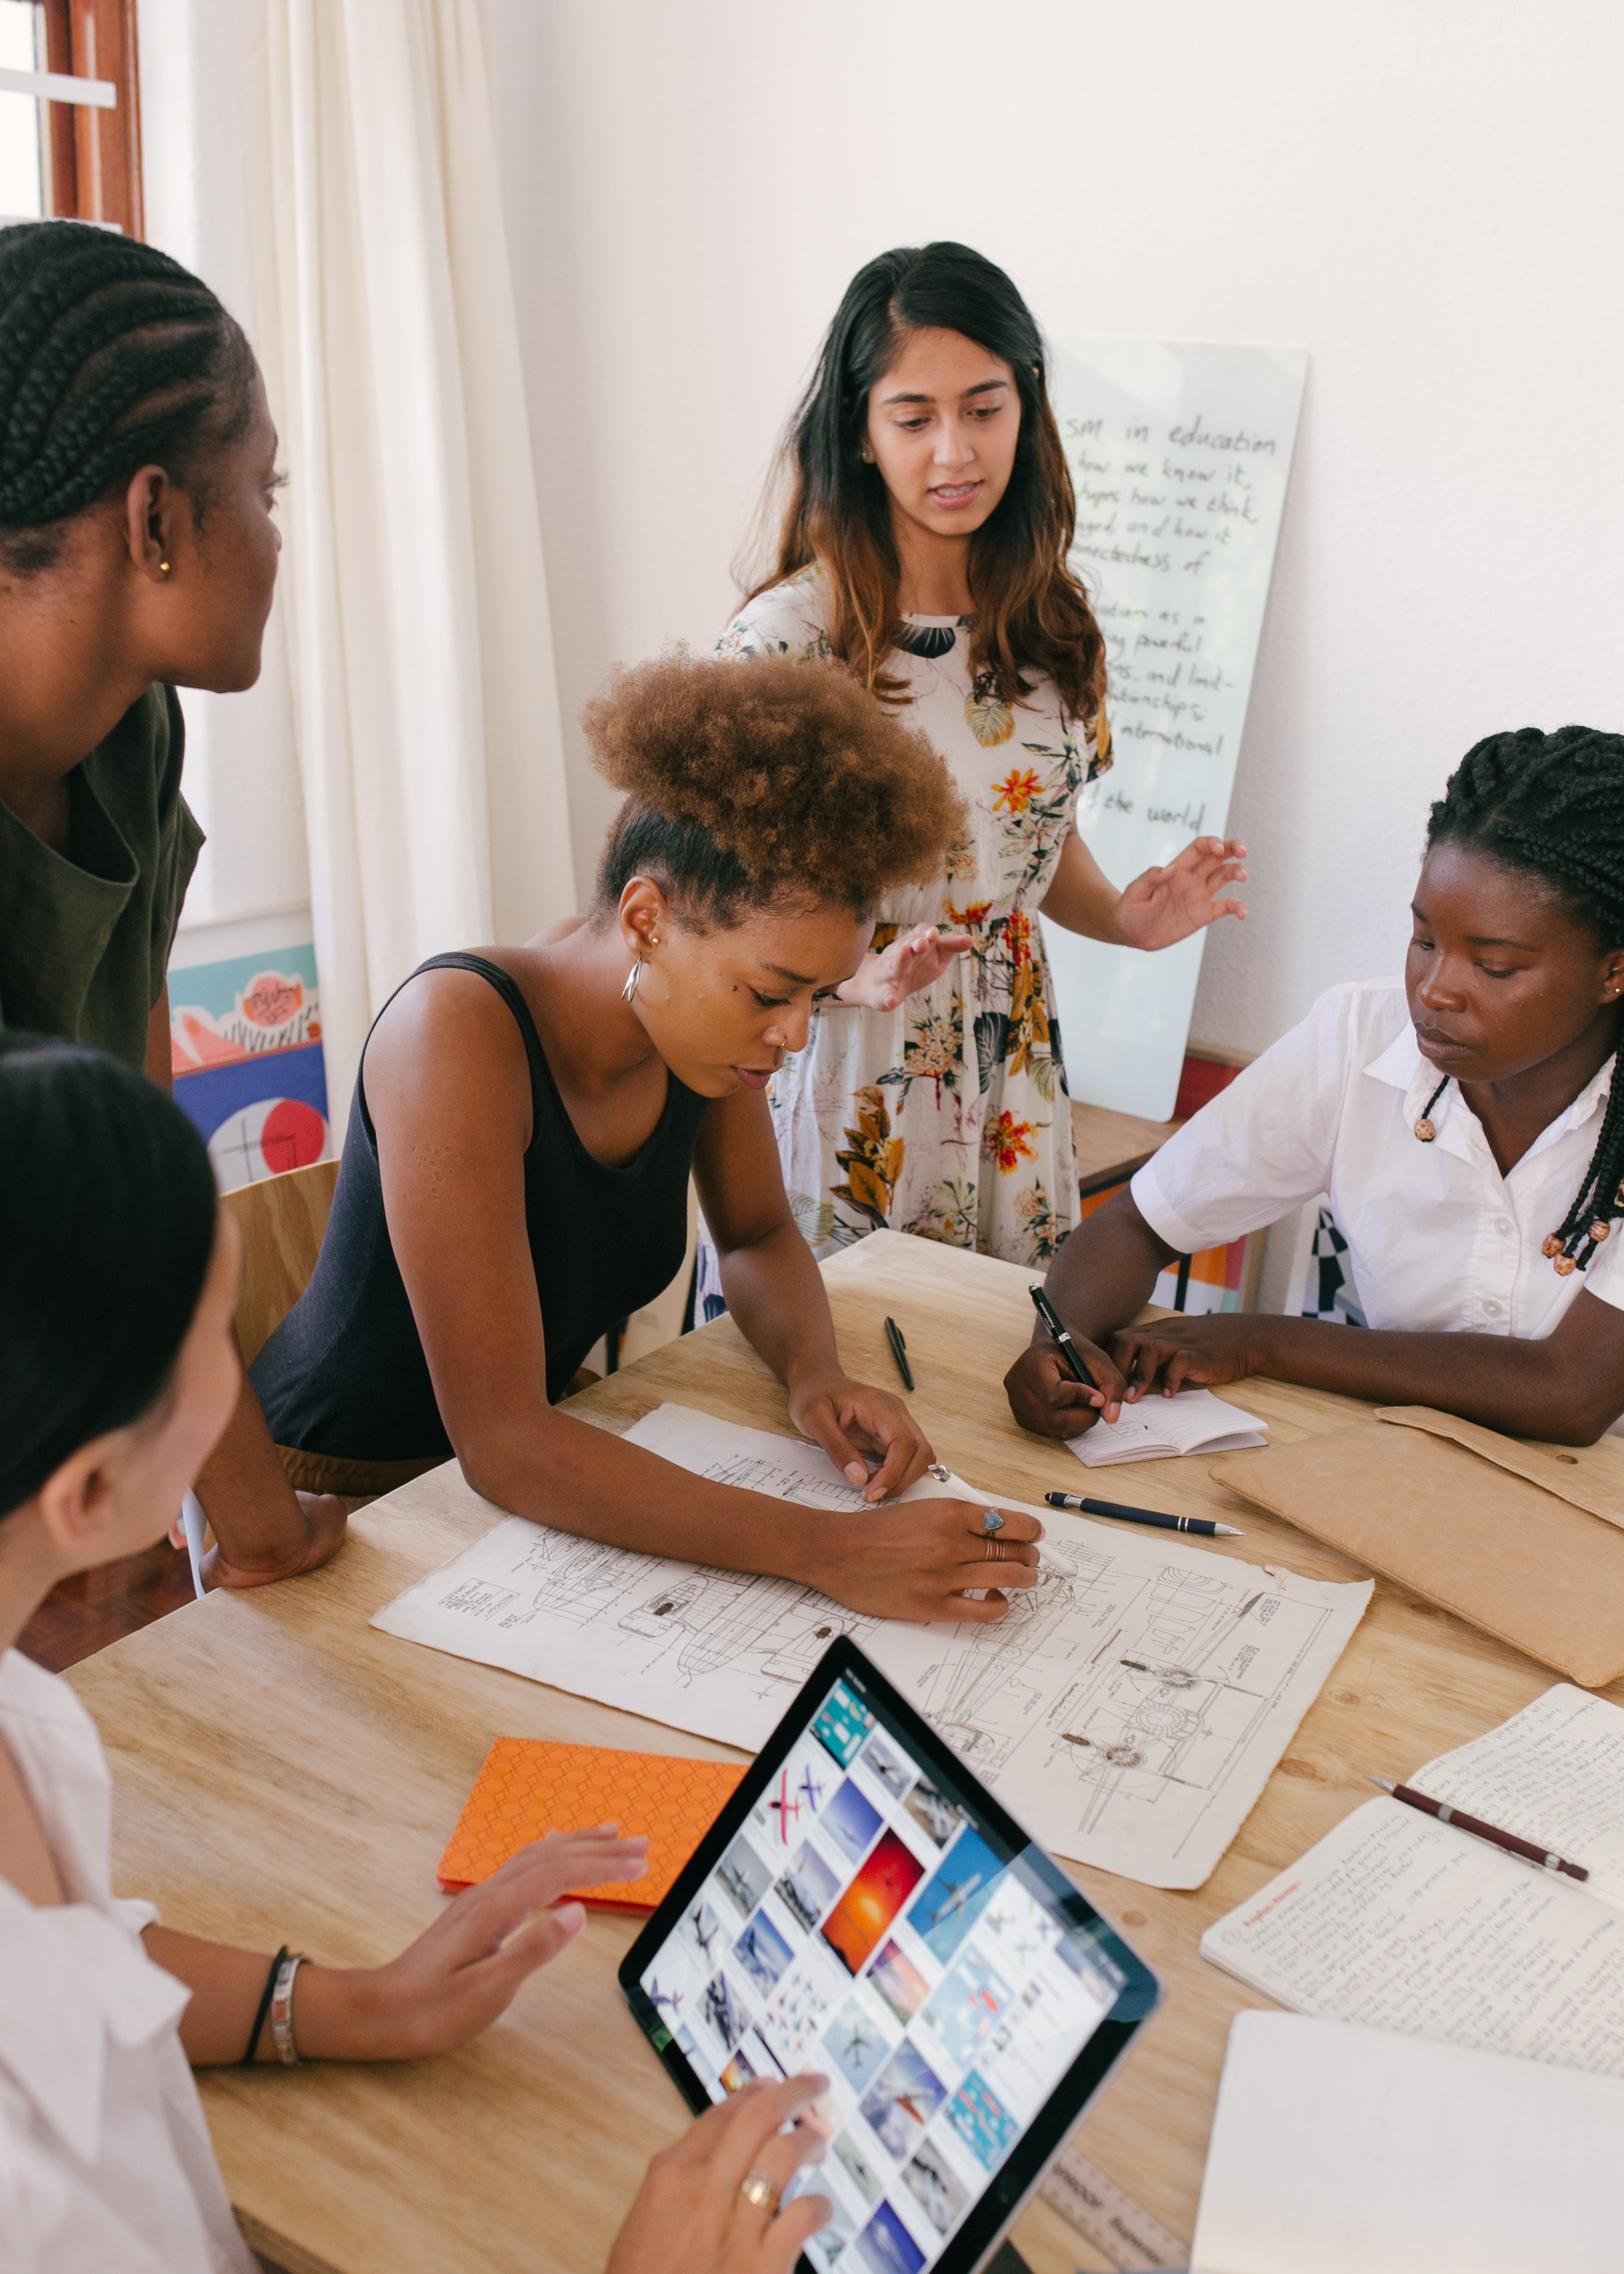 Women in a classroom working together at a table